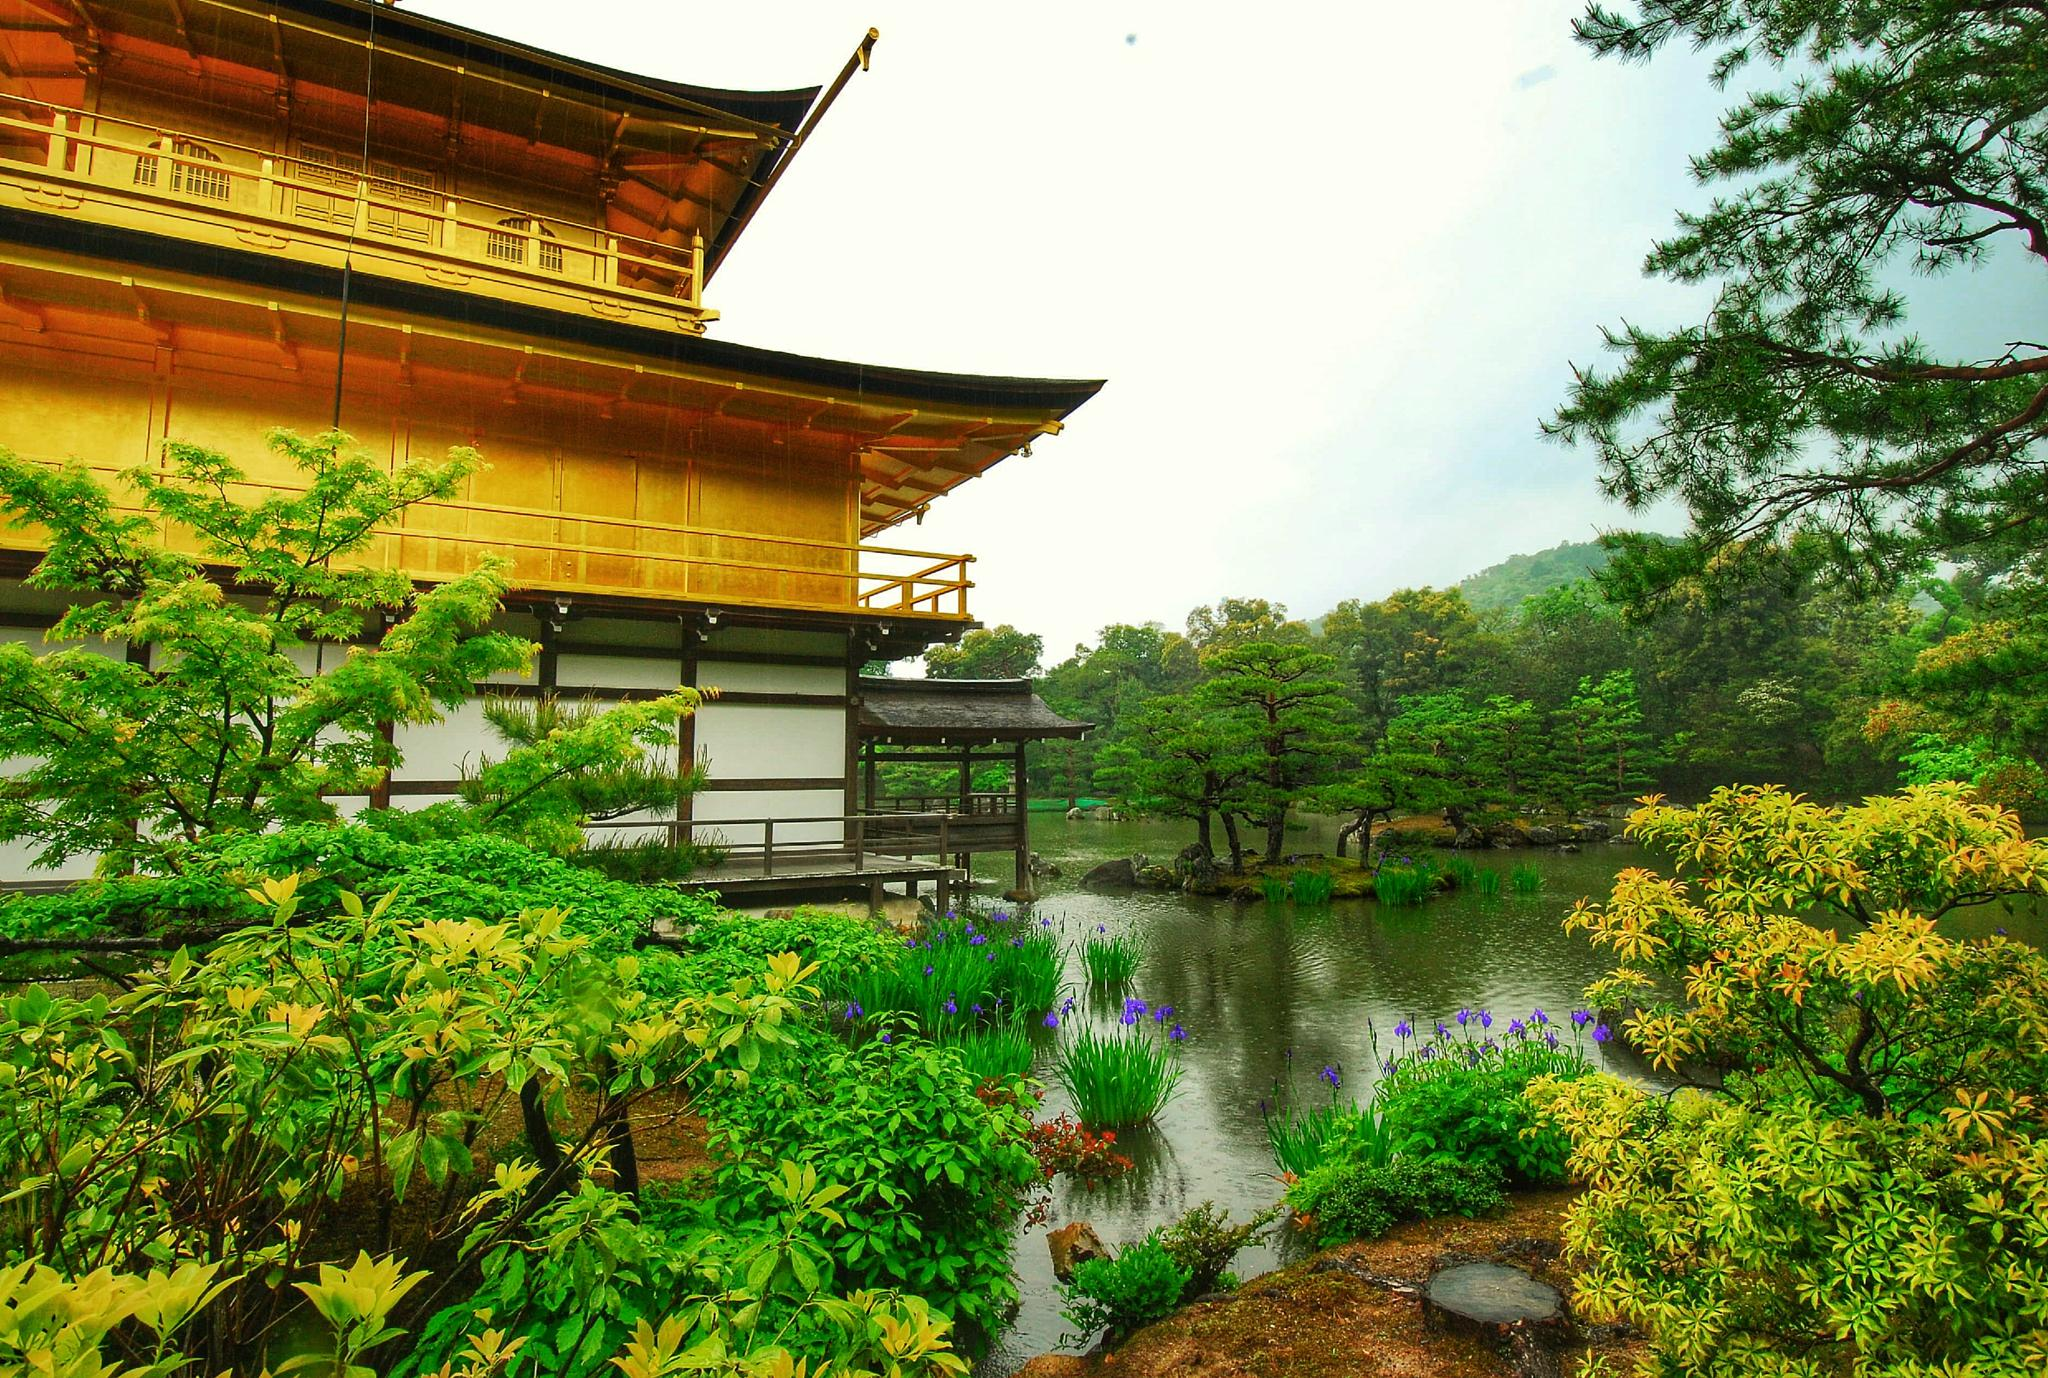 The Golden Pavilion Temple by Ming_Bear